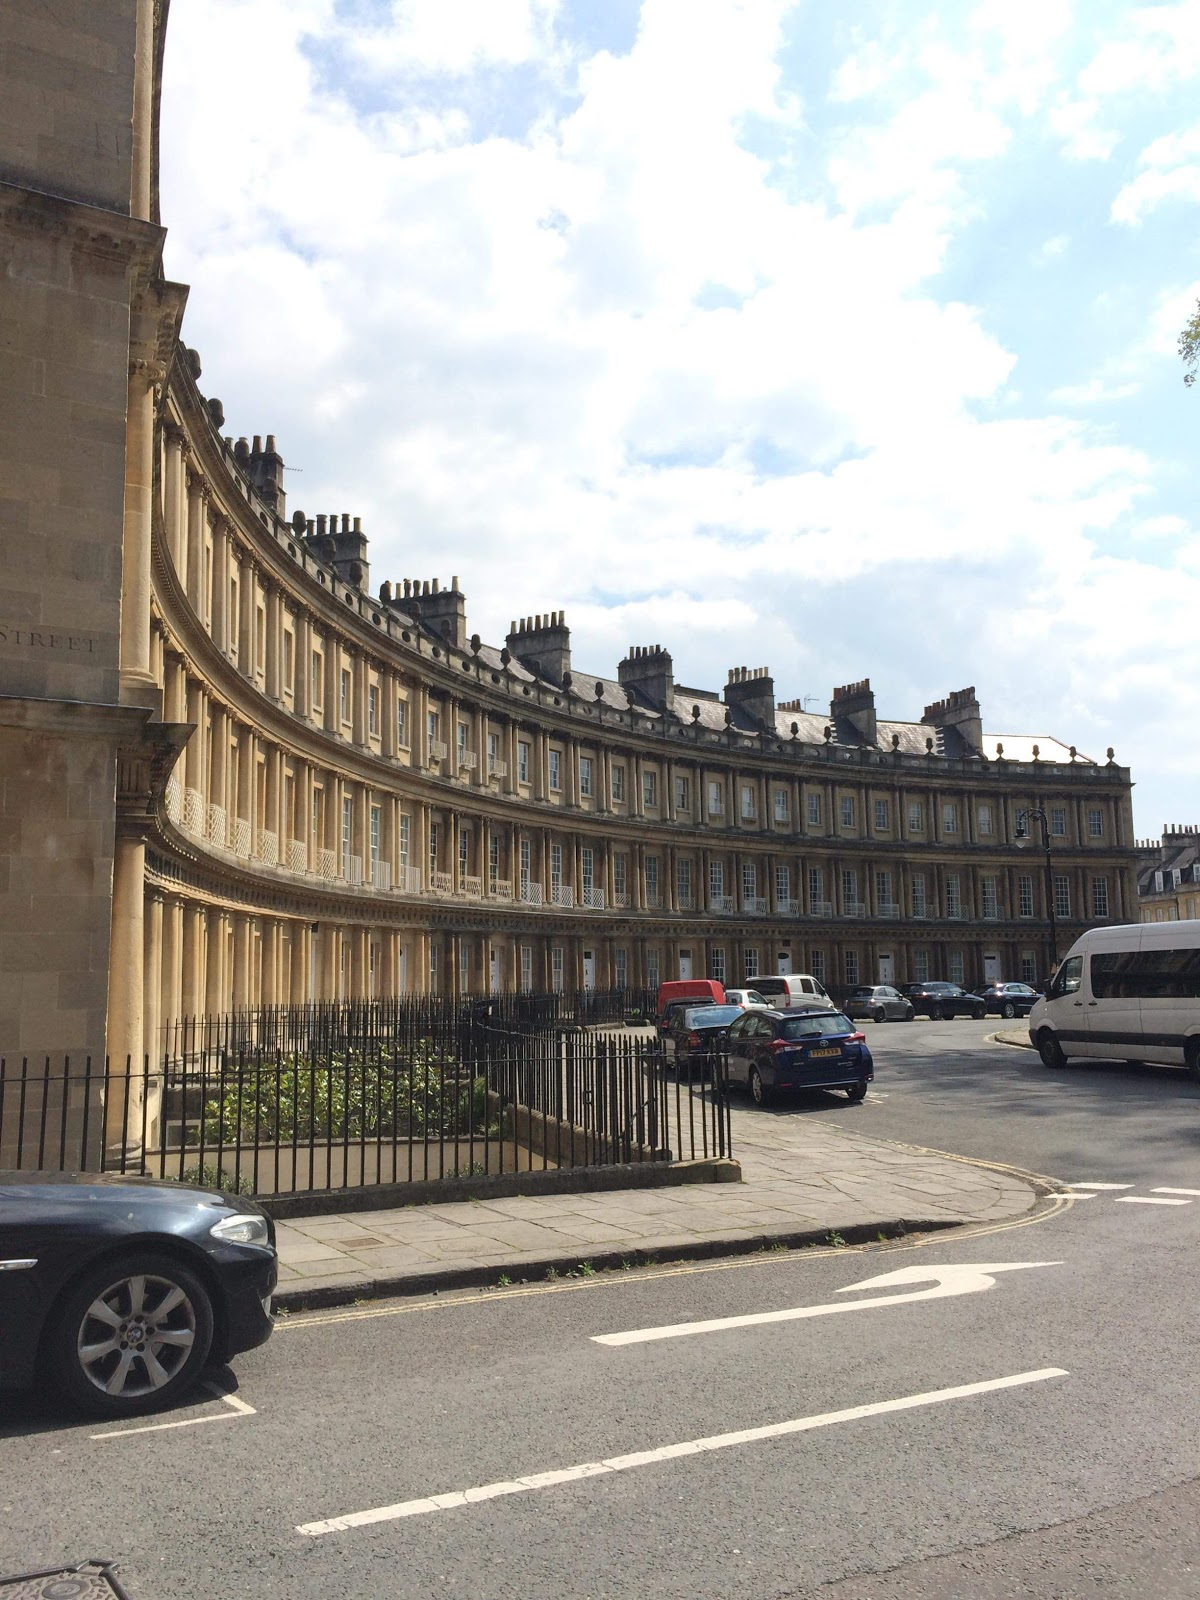 The Circus in Bath, England (Photo courtesy of Abby Pope)